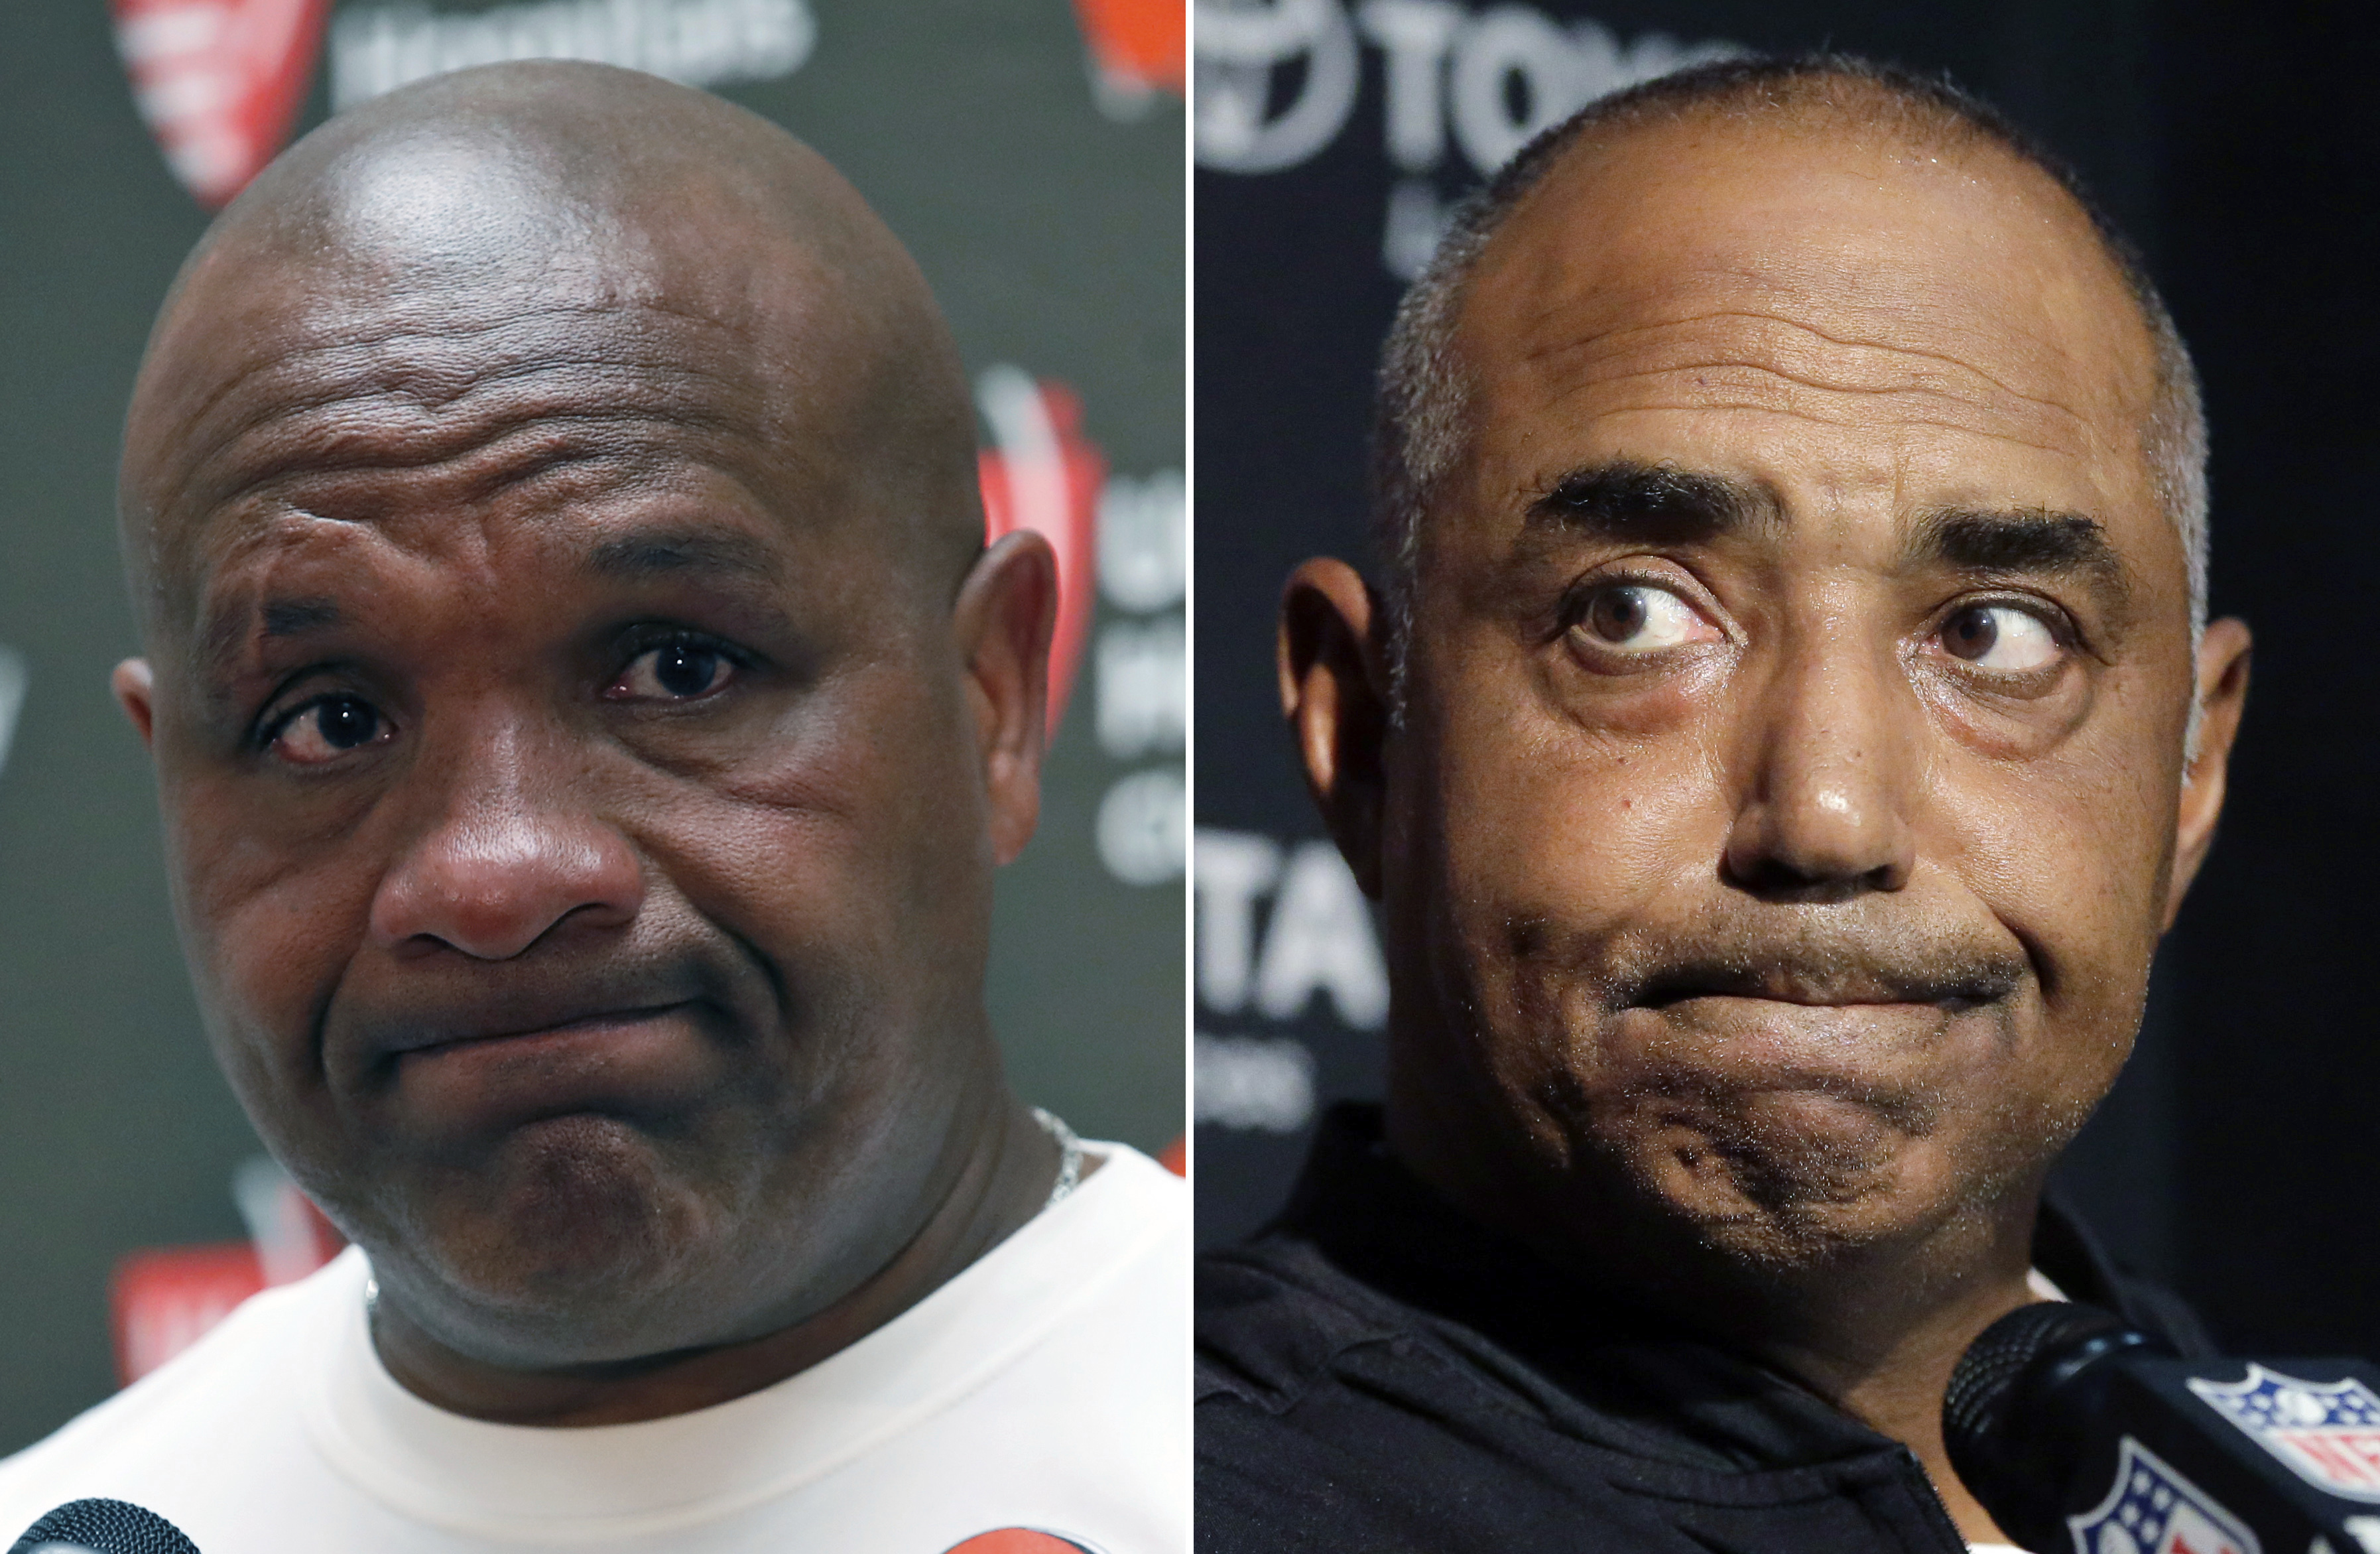 FILE - At left, in an Oct. 2, 2016, file photo, Cleveland Browns head coach Hue Jackson pauses while speaking during a media availability after an NFL football game against the Washington Redskins, in Landover, Md. At right, in an Oct. 16, 2016, file phot